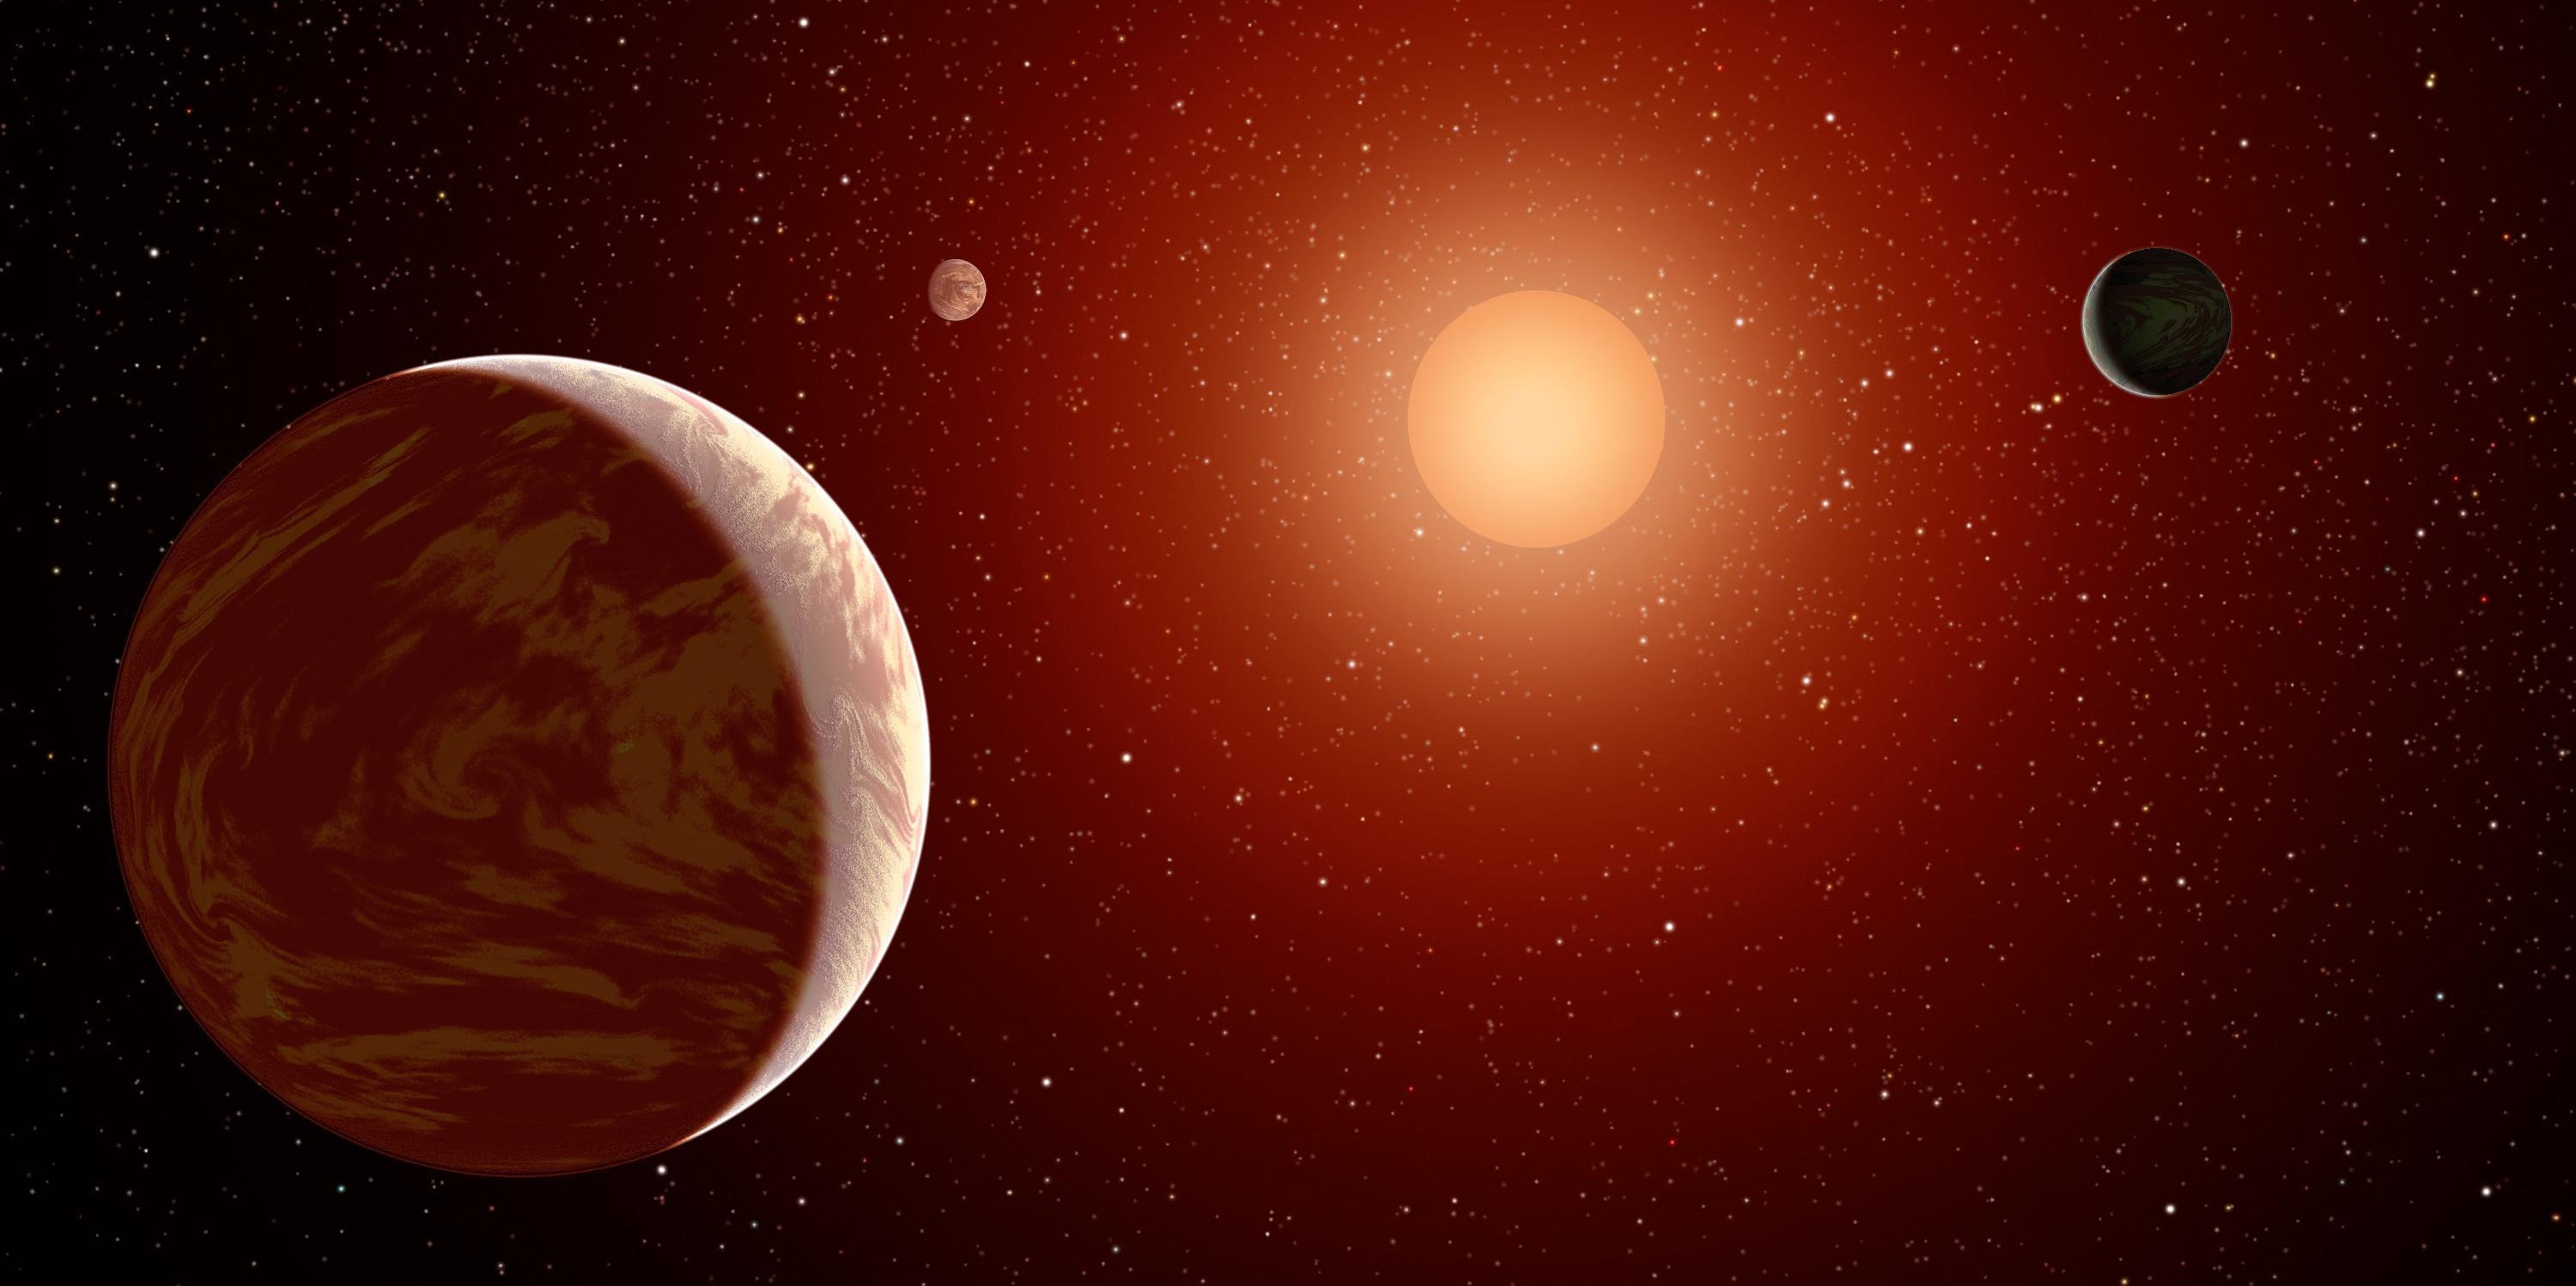 Hazy Orange Planets May Be Good Places to Live